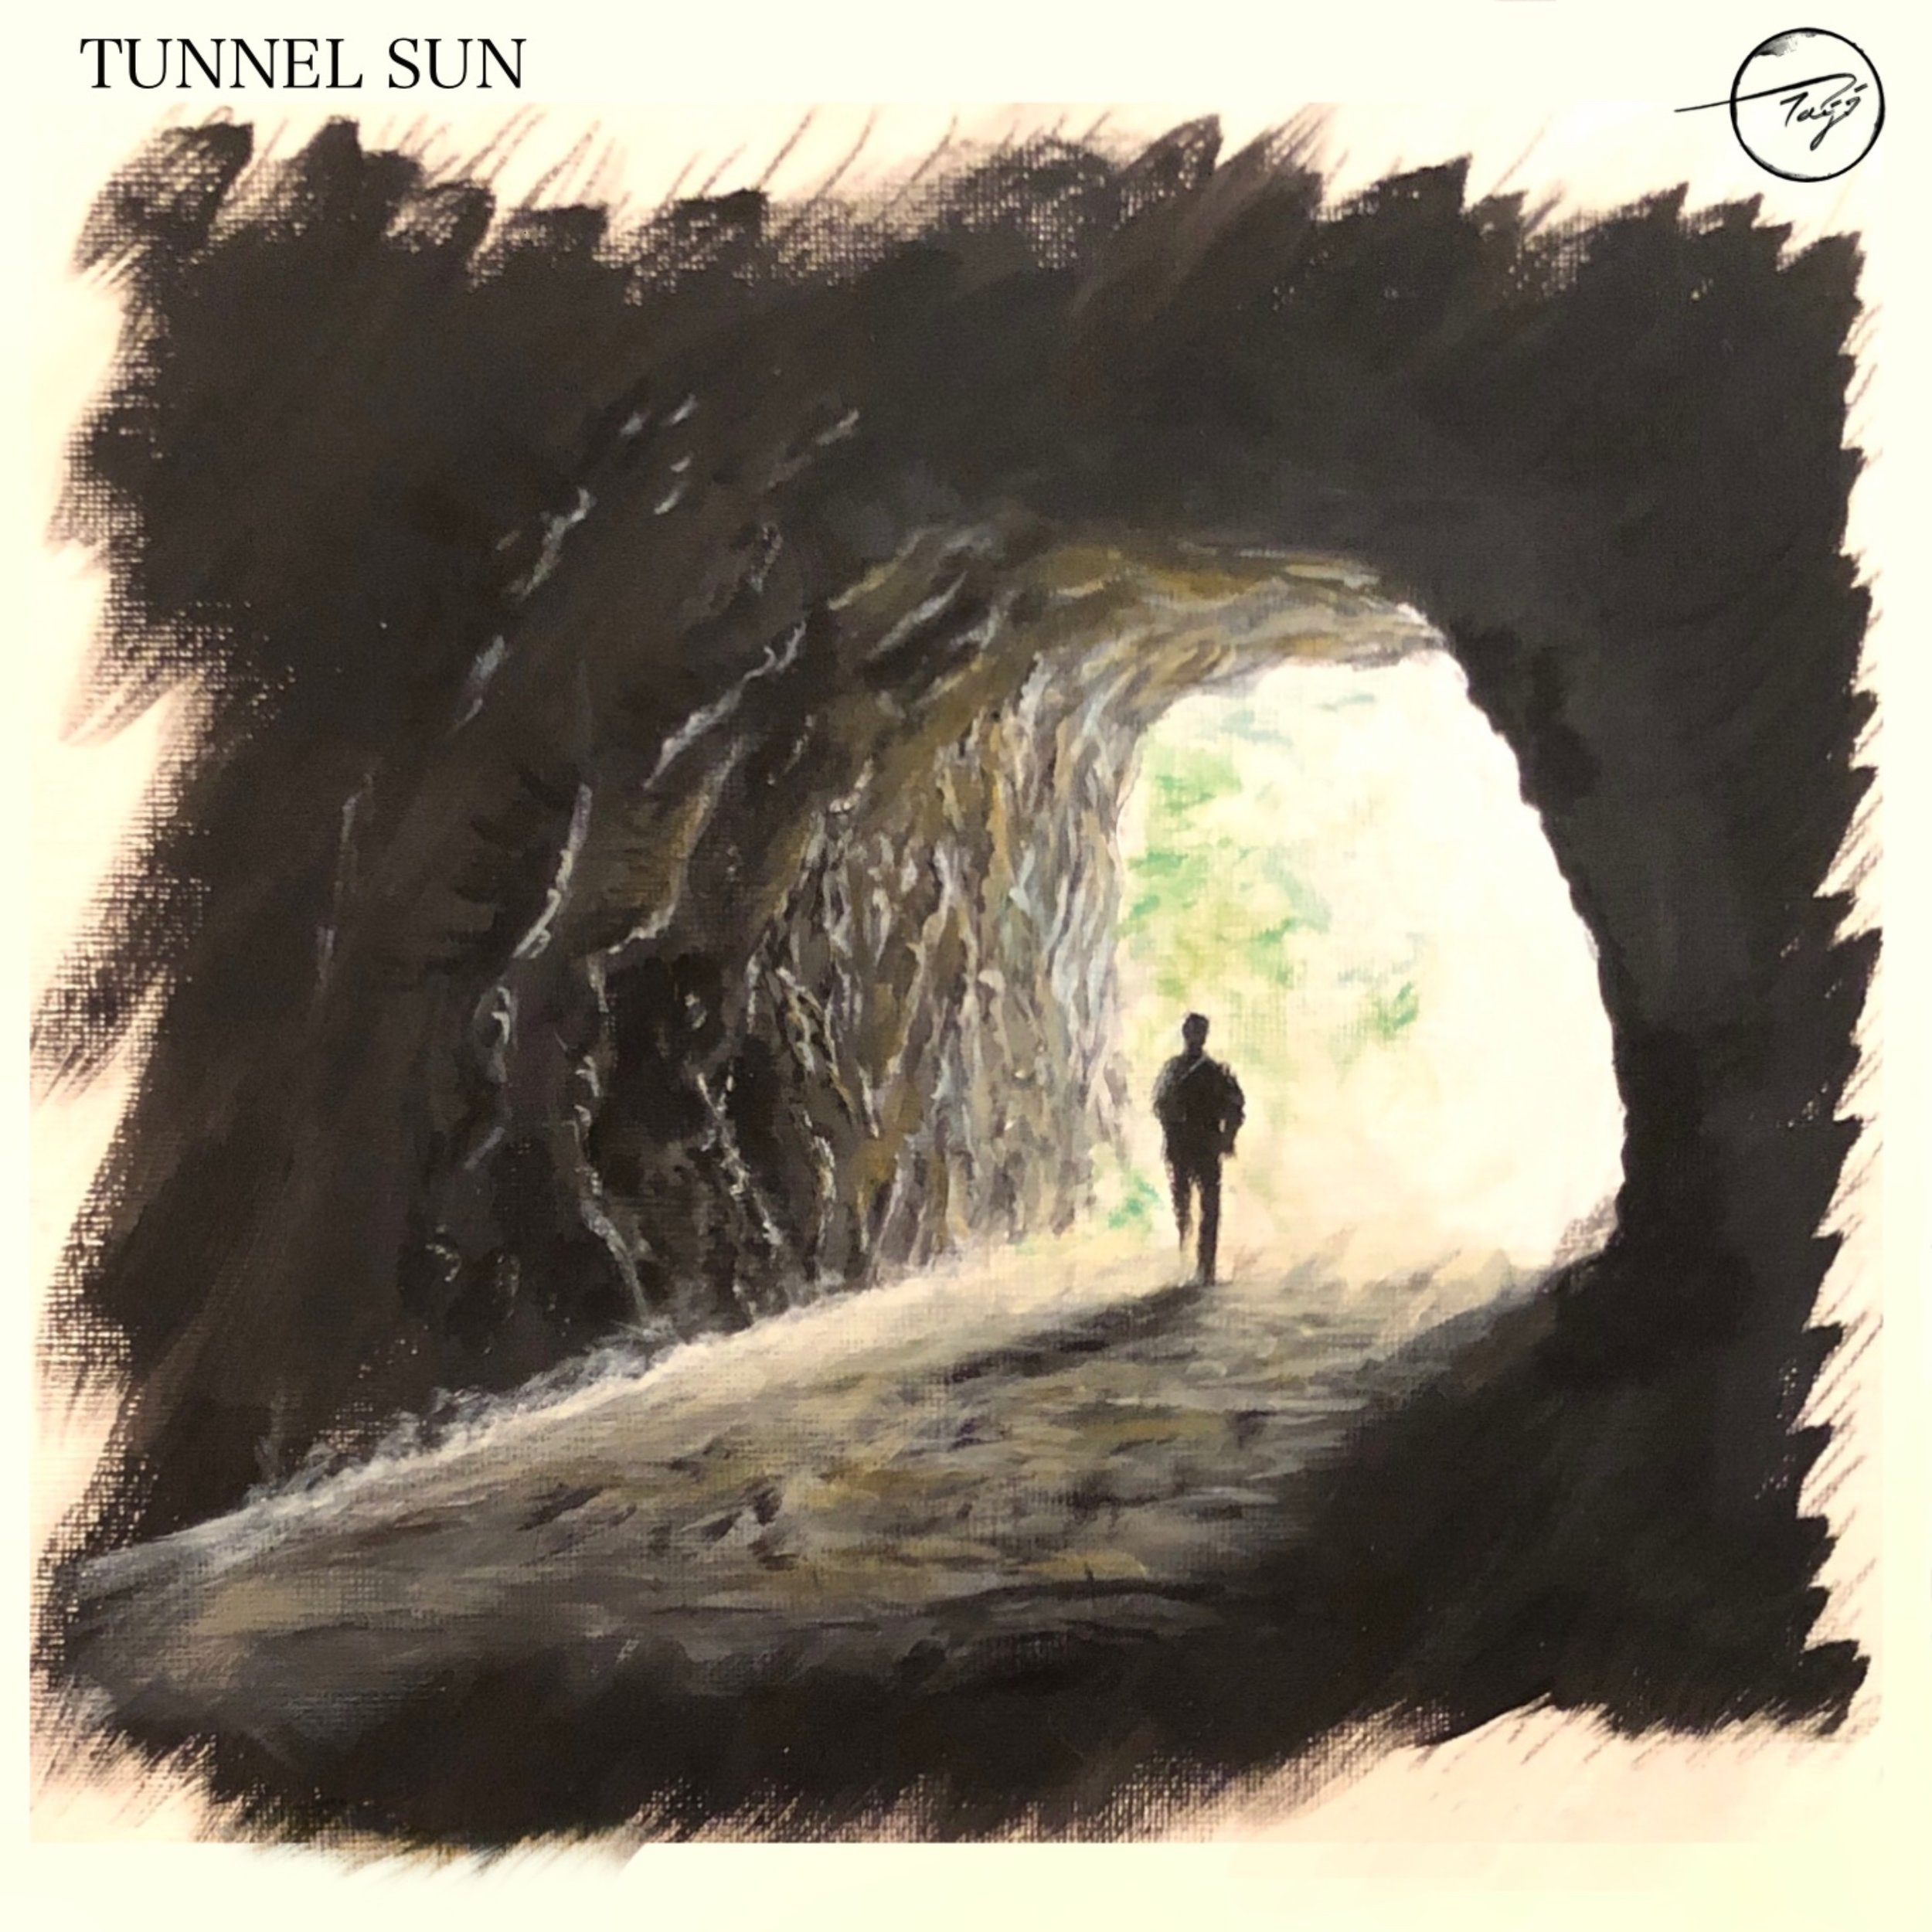 TUNNEL SUN - LYRICS